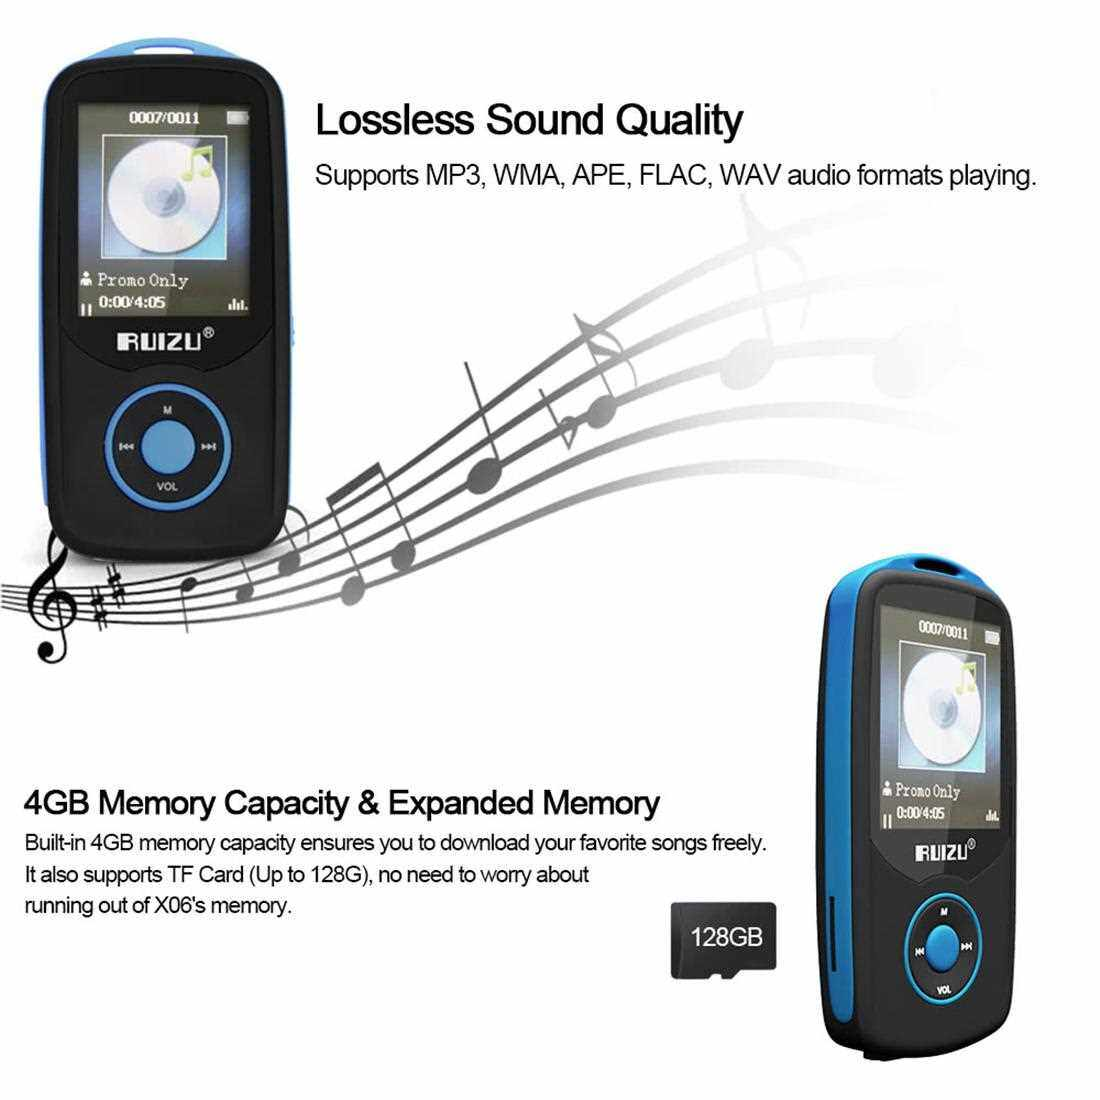 Best Selling RUIZU X06 4GB MP3 / MP4 Player Lossless Music Player Bluetooth Connection FM Radio Recoding w/ TF Card Slot 1.8 Inches Screen (Blue+Black)